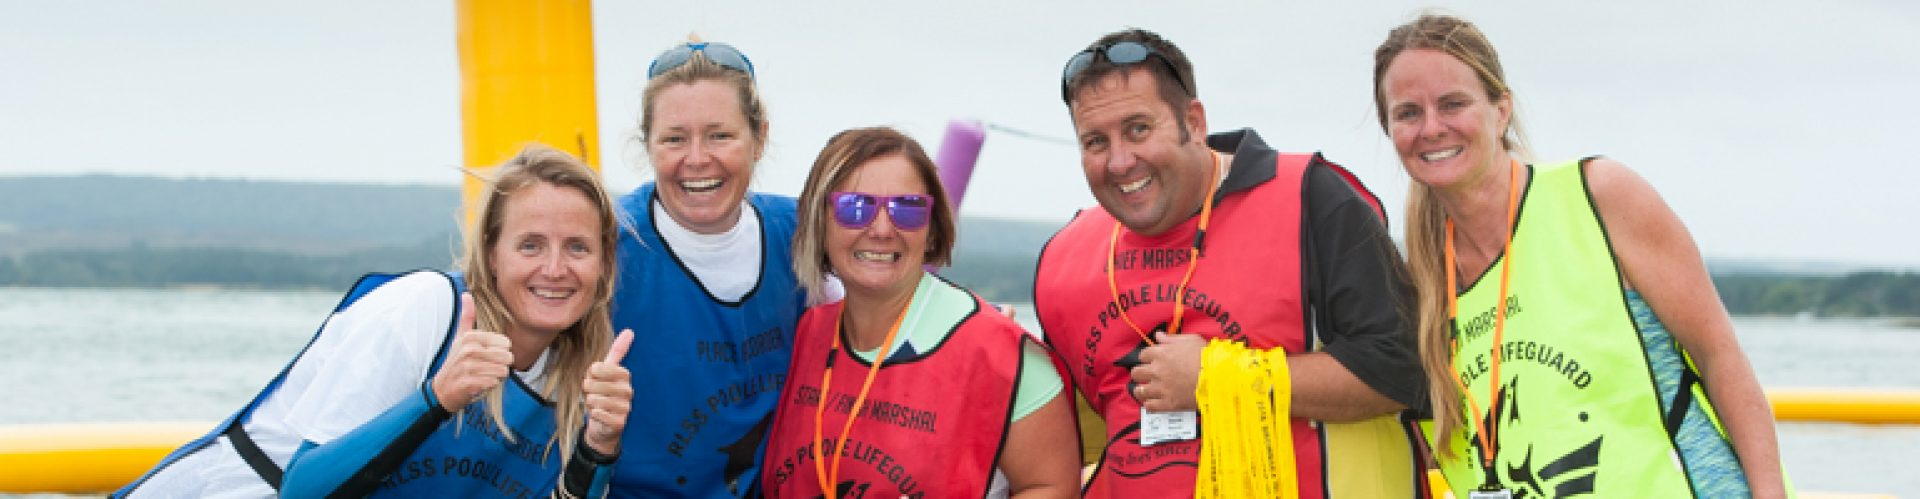 https://www.rlss-poole.org.uk/wp-content/uploads/2013/09/cropped-0917_DB2_0732-1.jpg